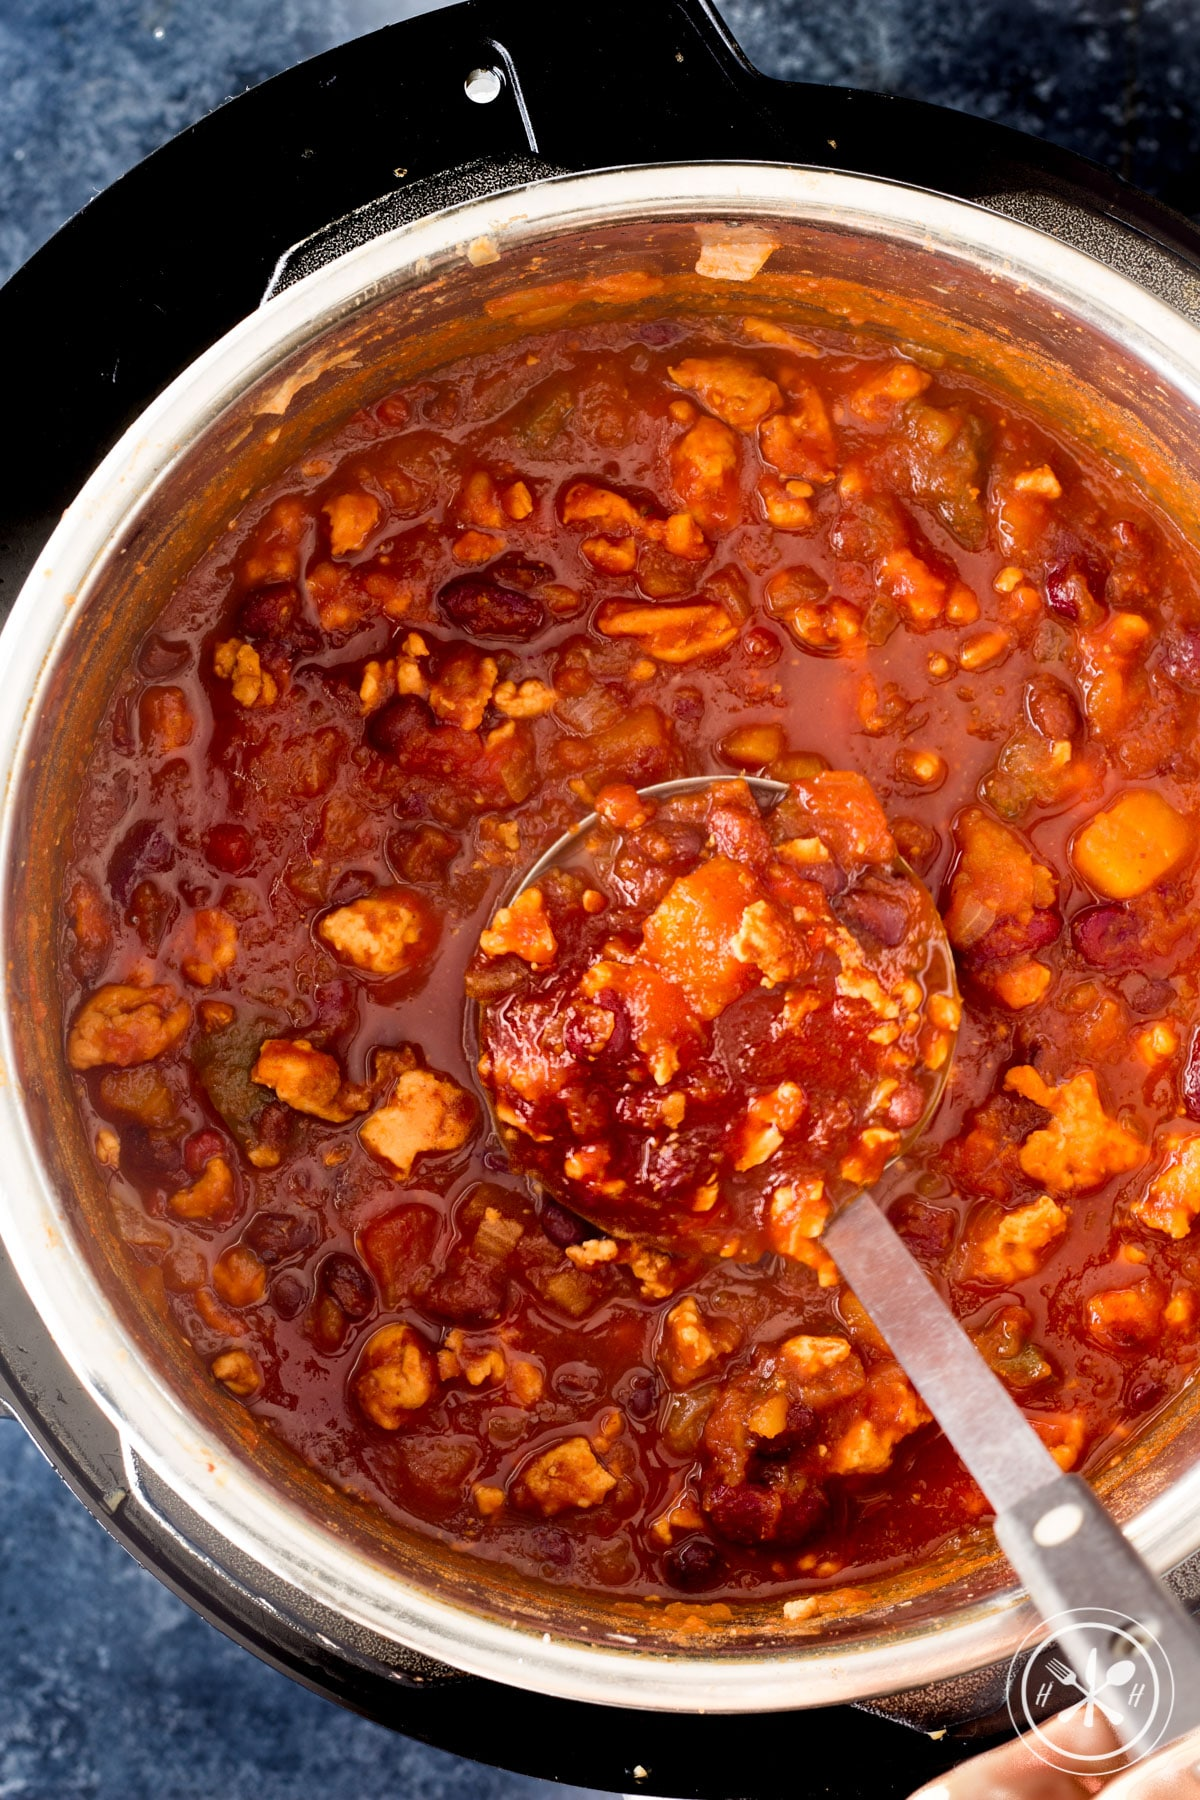 Instant pot turkey chili after cooking.